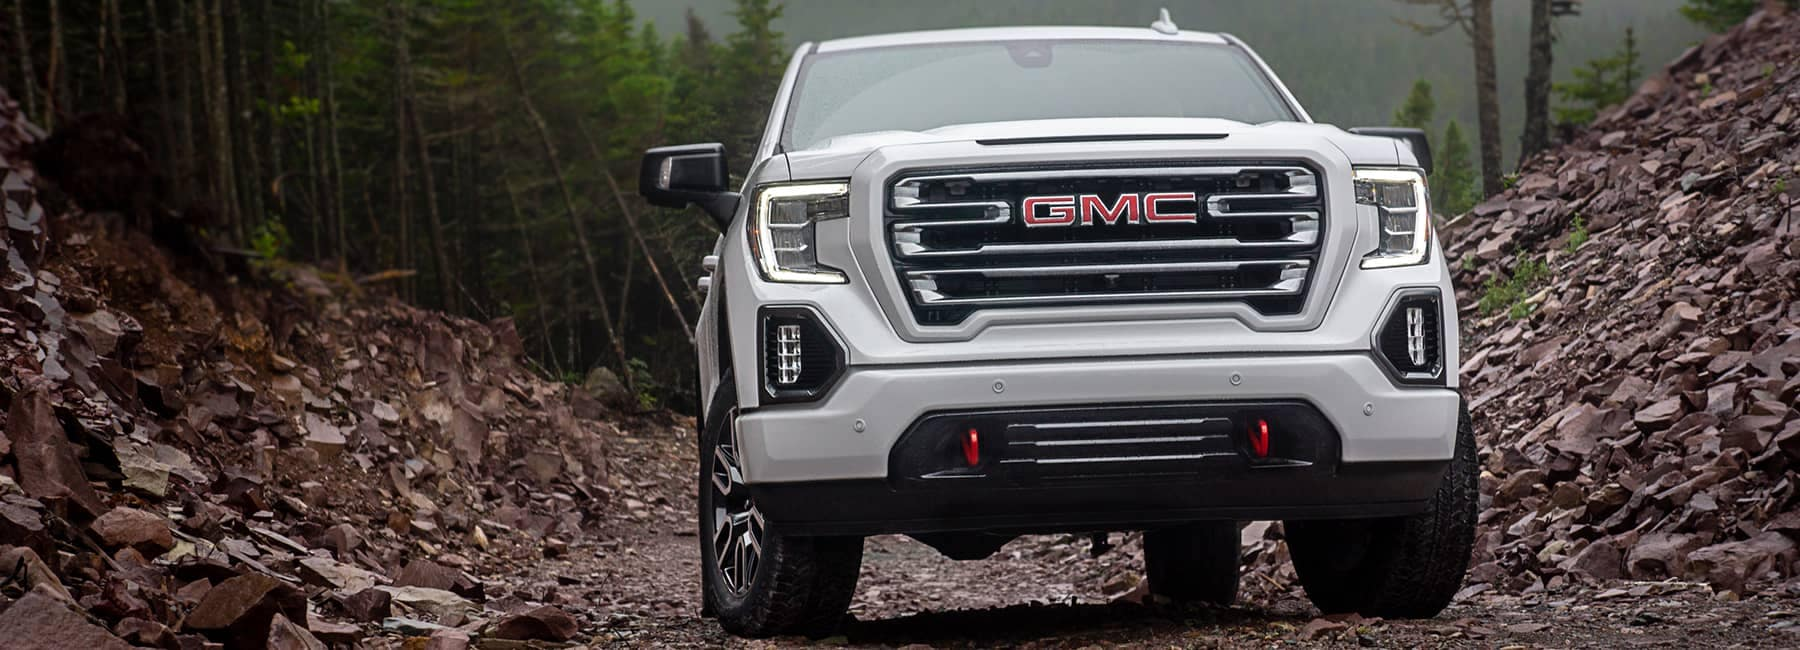 GMC Double Your Warrantly